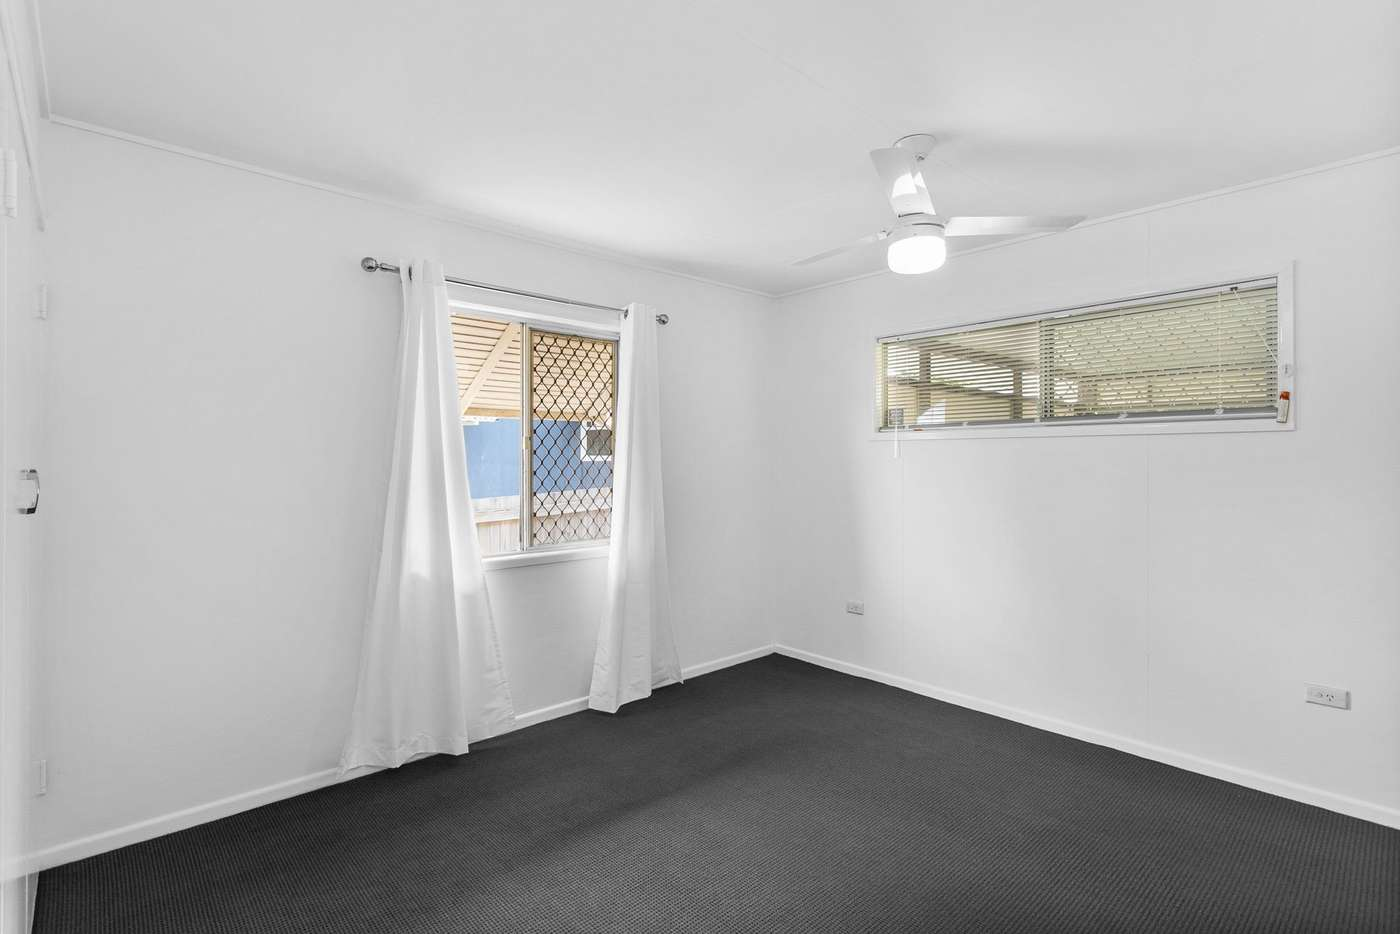 Seventh view of Homely house listing, 24 Southwell Street, Kippa-ring QLD 4021